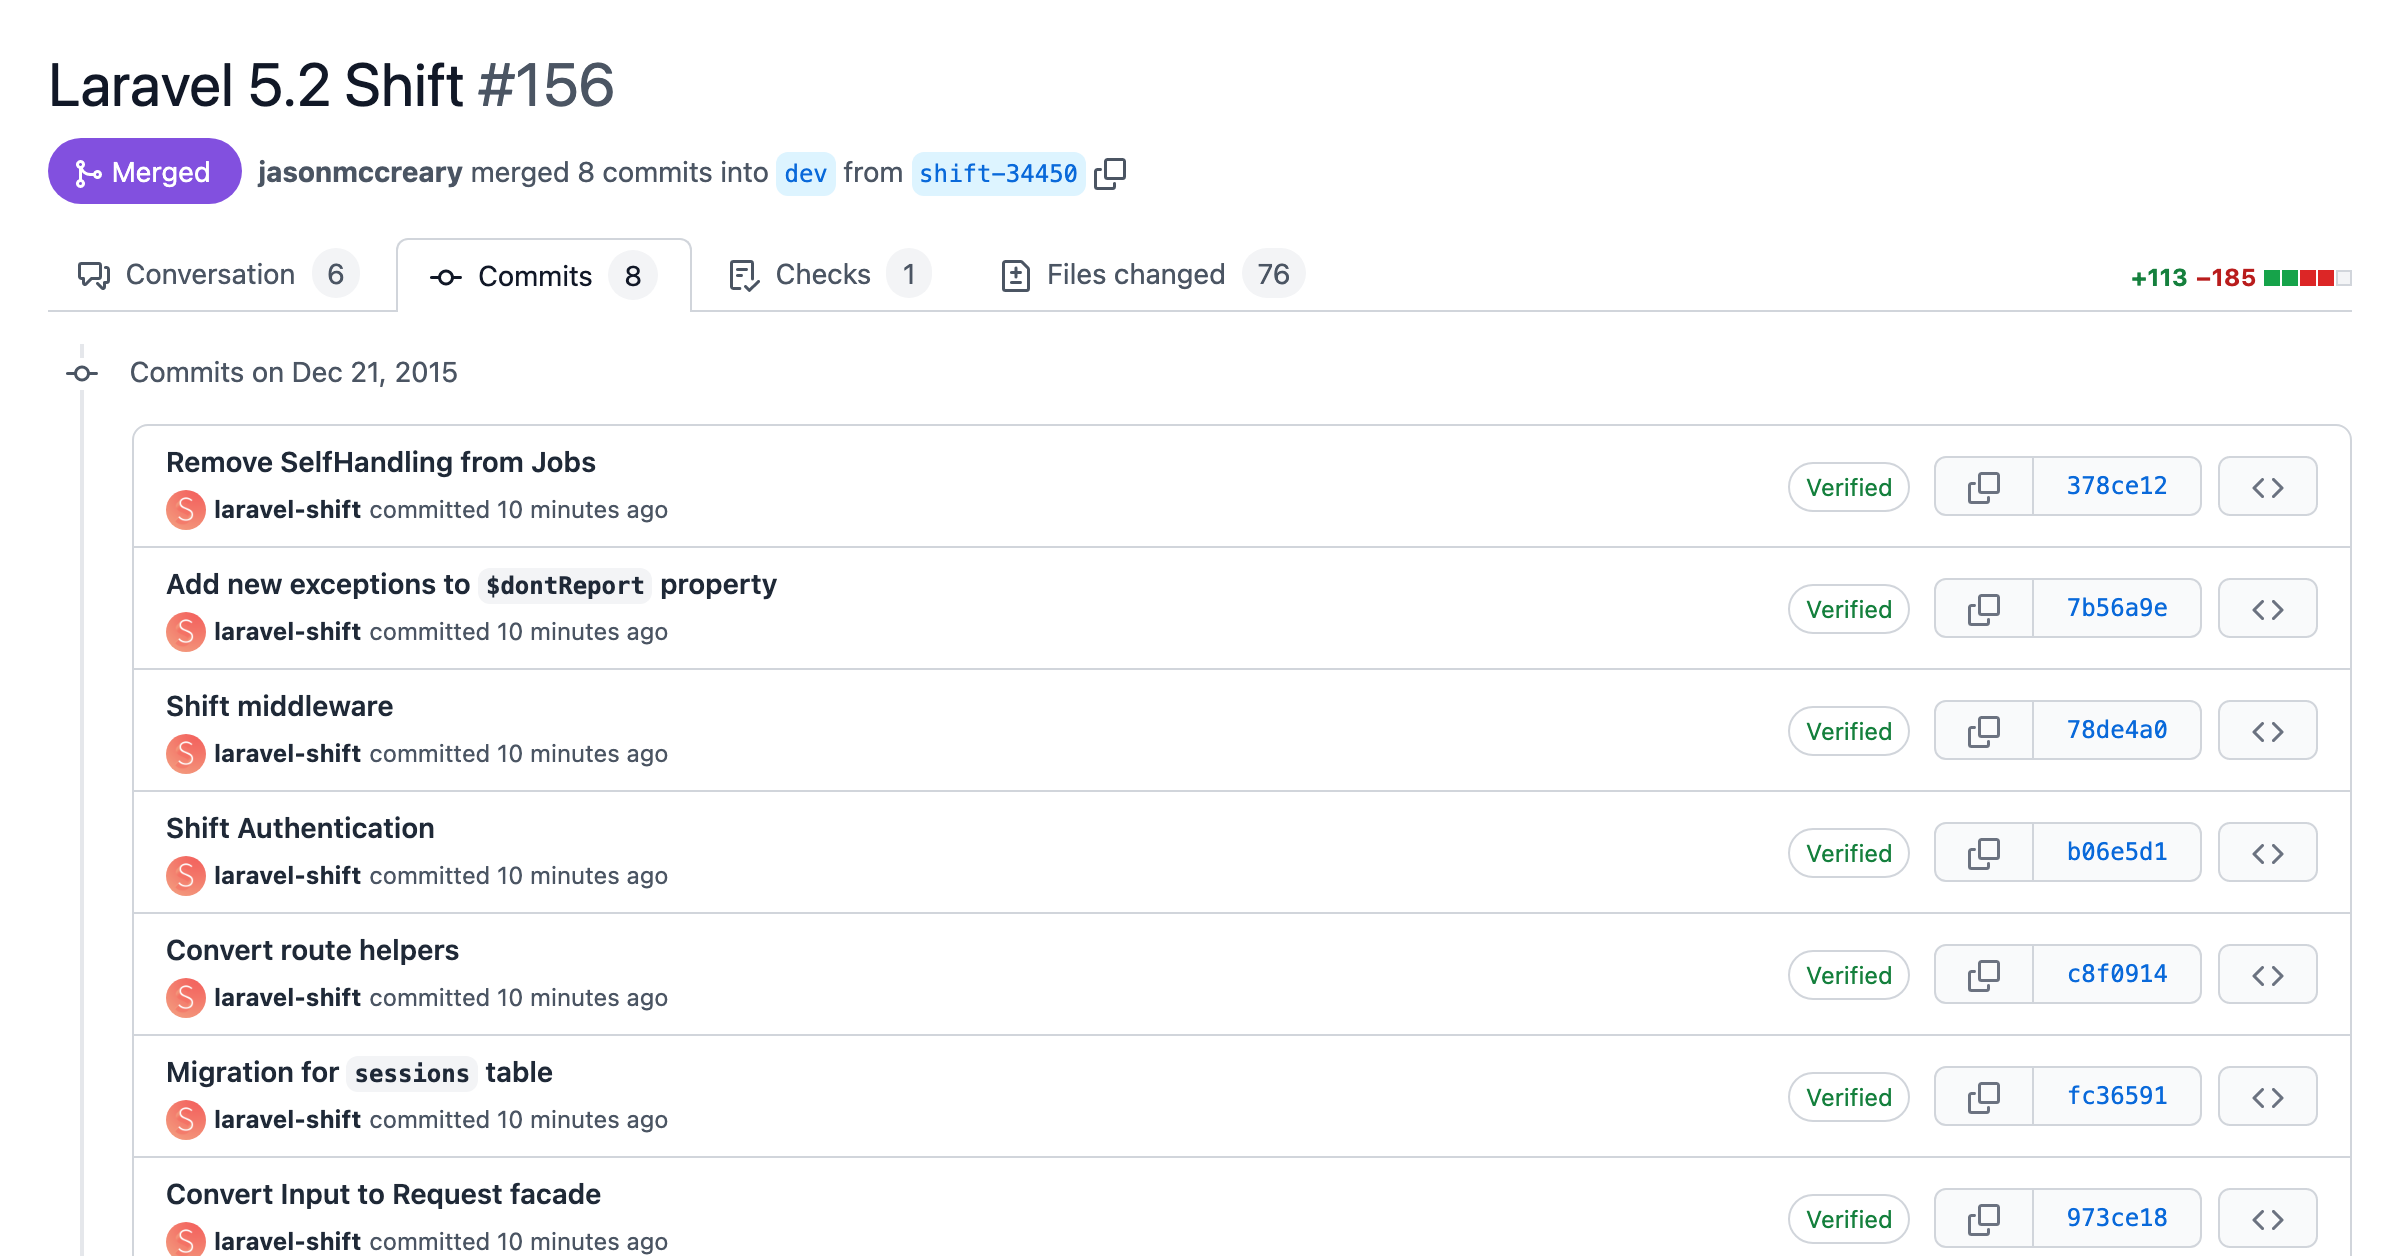 Screenshot of a pull request with atomic commits for each change of the Laravel 5.2 Shift